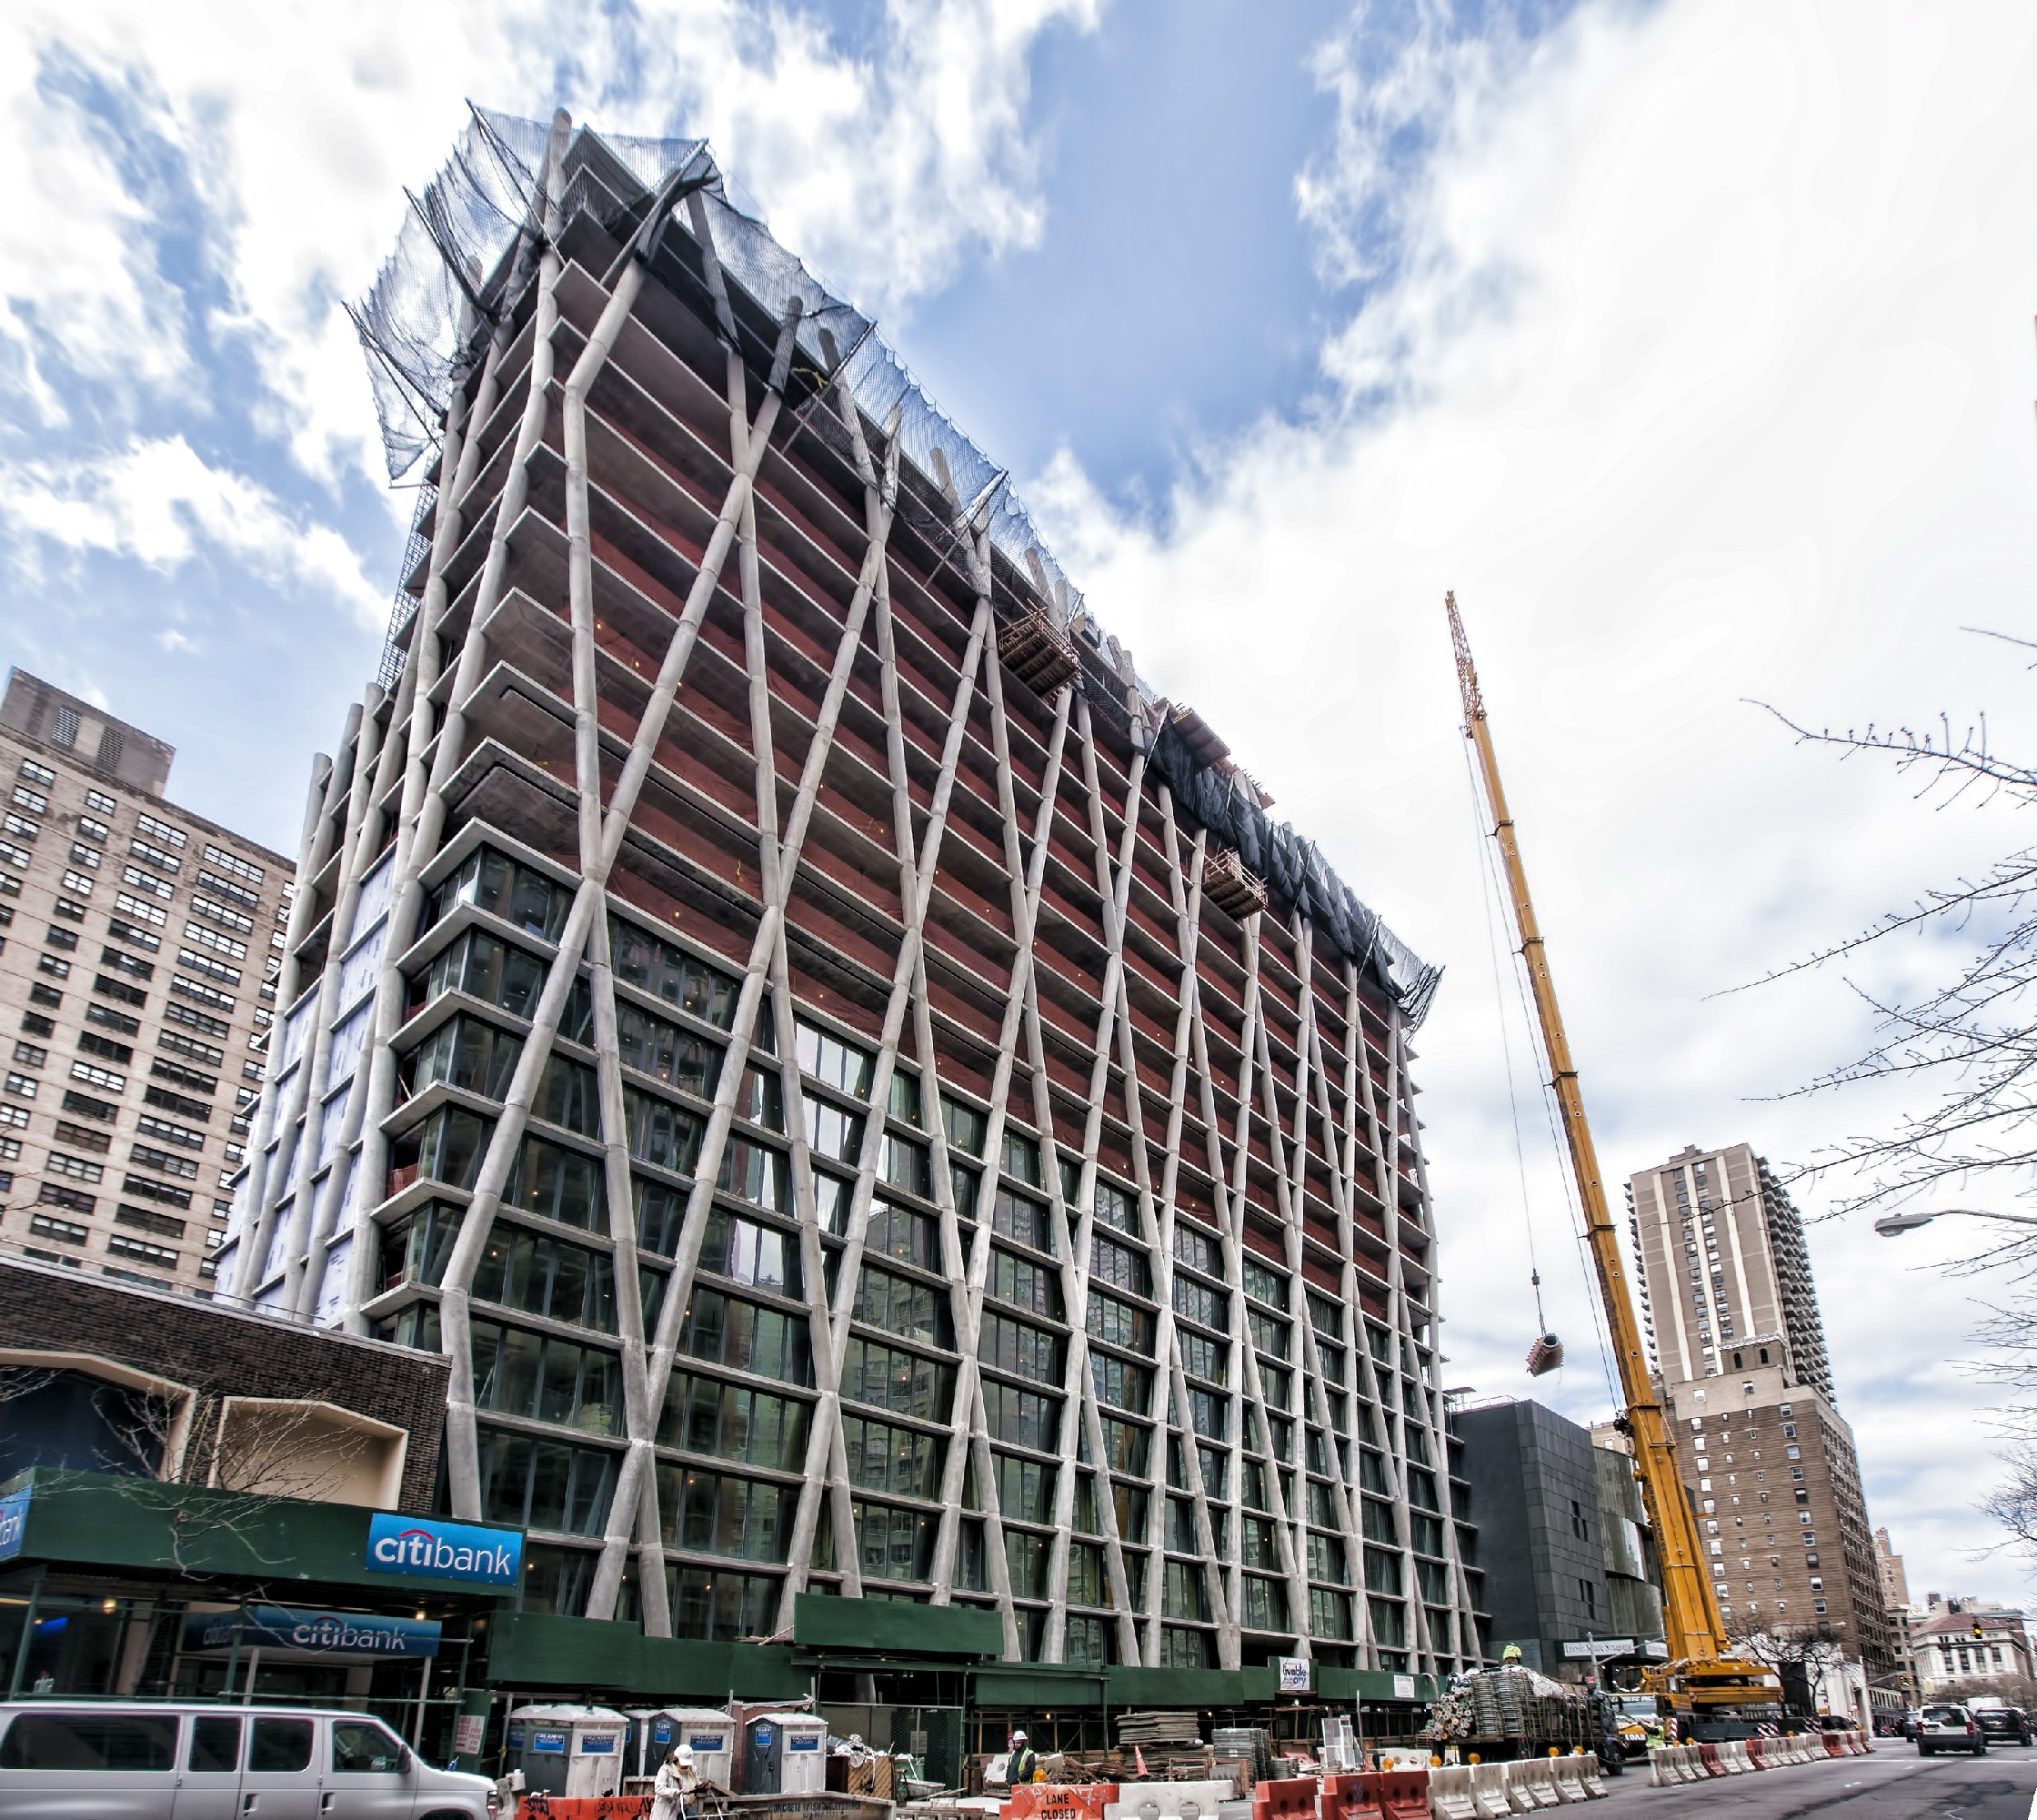 Concrete Superstructure: 170 Amsterdam Ave. New York, NY 21 Story Concrete